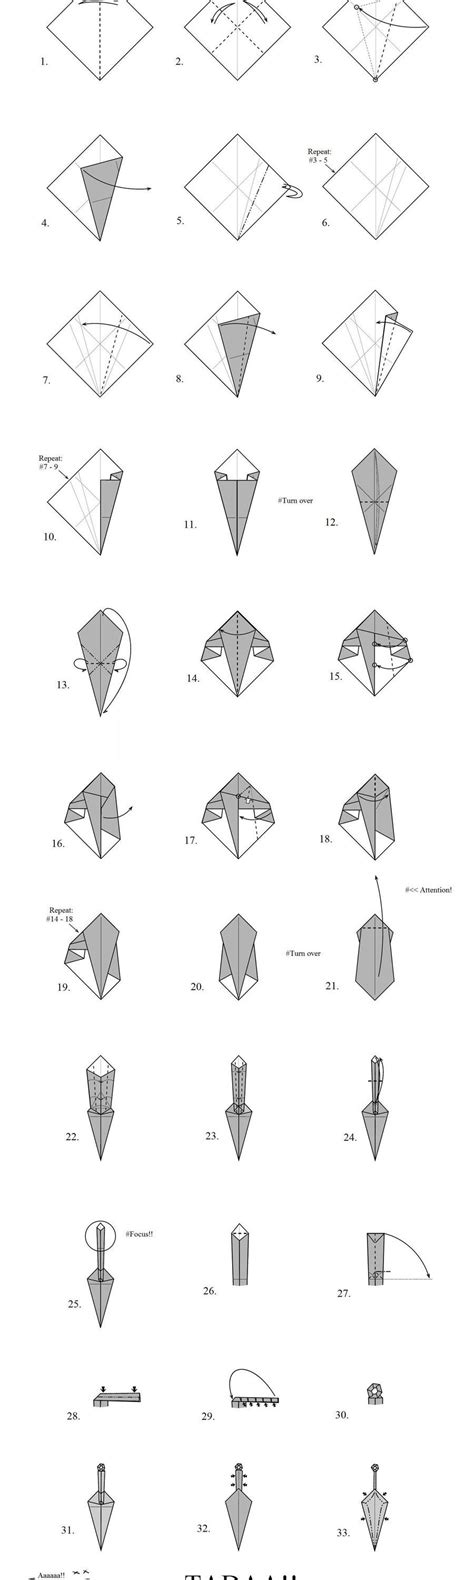 Shafer Origami Diagrams - origami how to make a origami paper sword origami